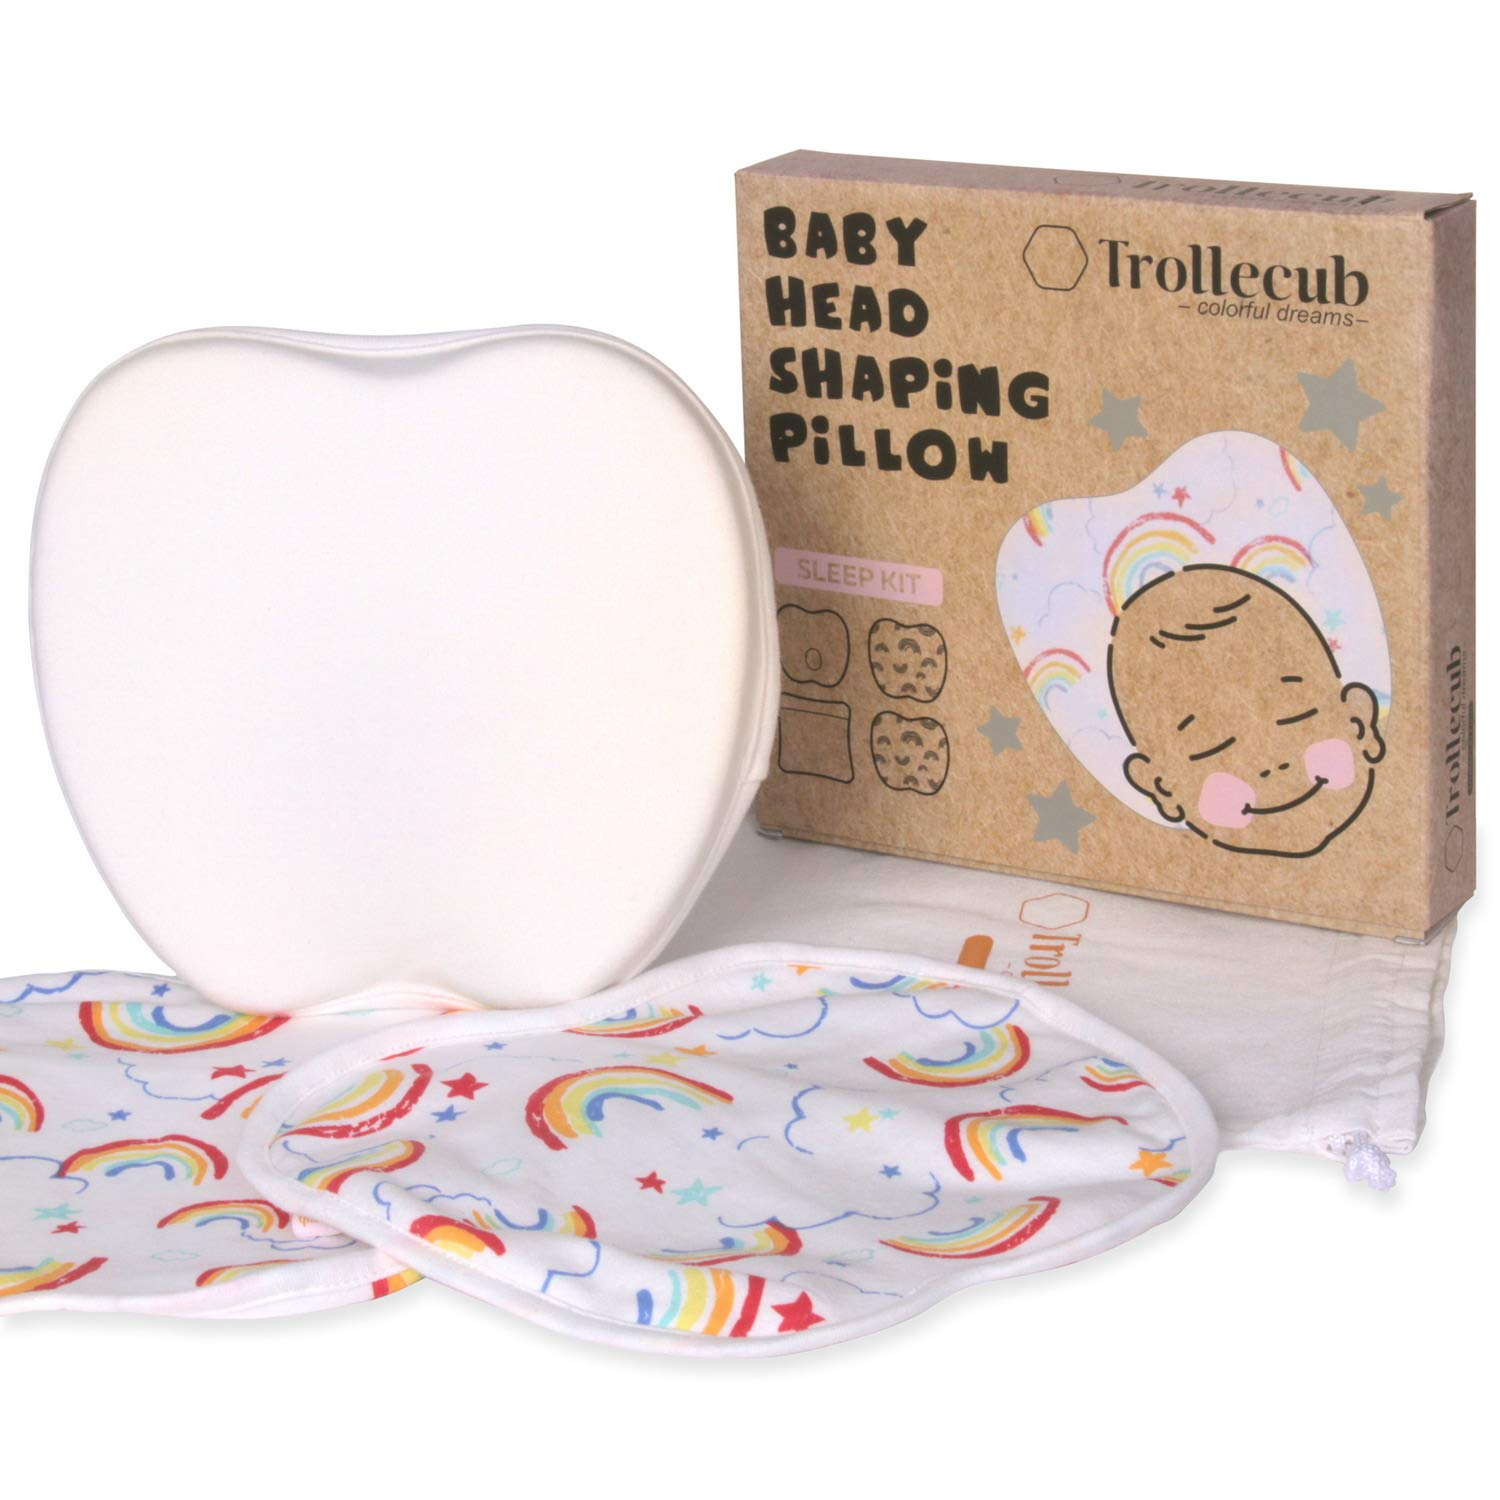 Trollecub Flat Head Baby Pillow Set with 2 Machine-Washable Cotton Cases, Premium Packing and Travel Bag, Newborn Head Shaping Pillow with Soft Memory Foam, Plagiocephaly Syndrome Prevention